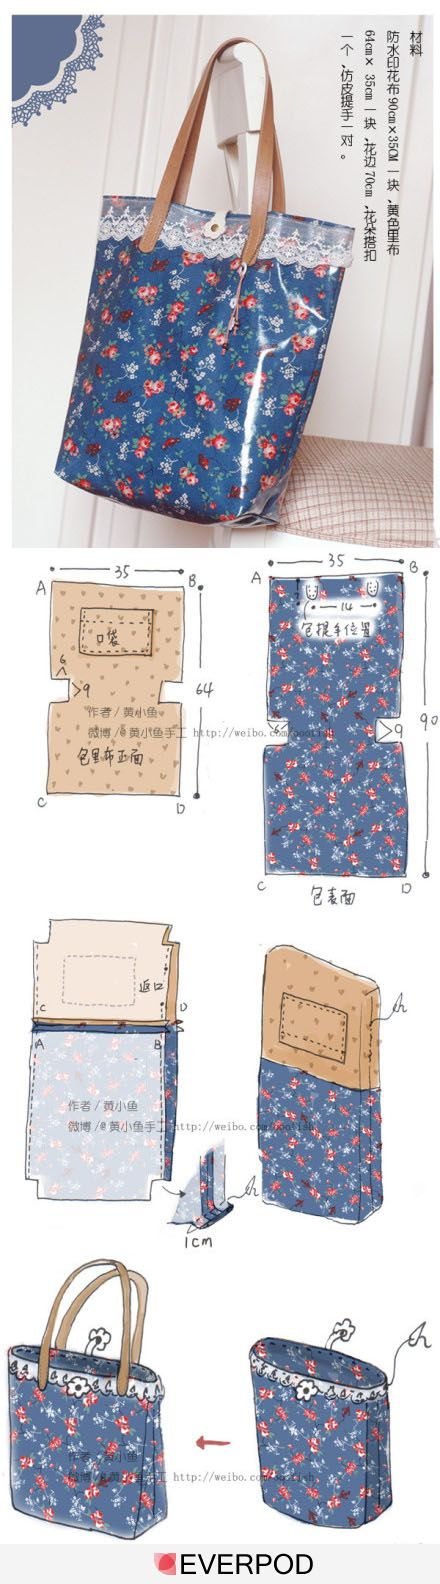 nice looking tutorial/picture for tote making (using laminated fabric and a lining)